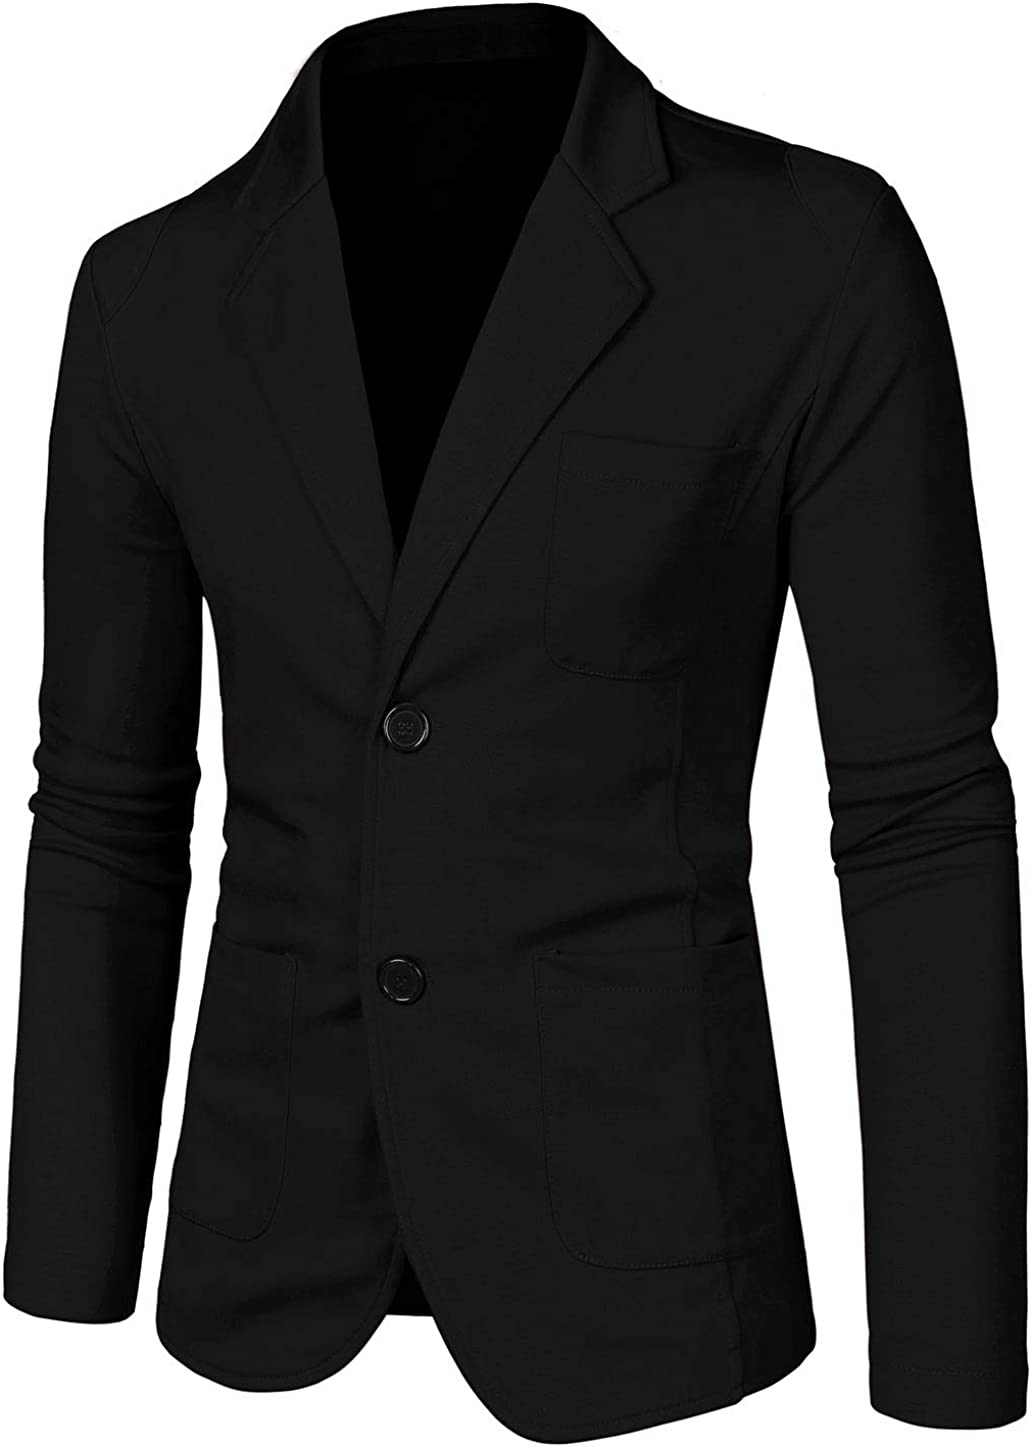 uxcell Men's Casual Sports Coat Lightweight Card New Orleans Mall Fit Award-winning store Slim Button